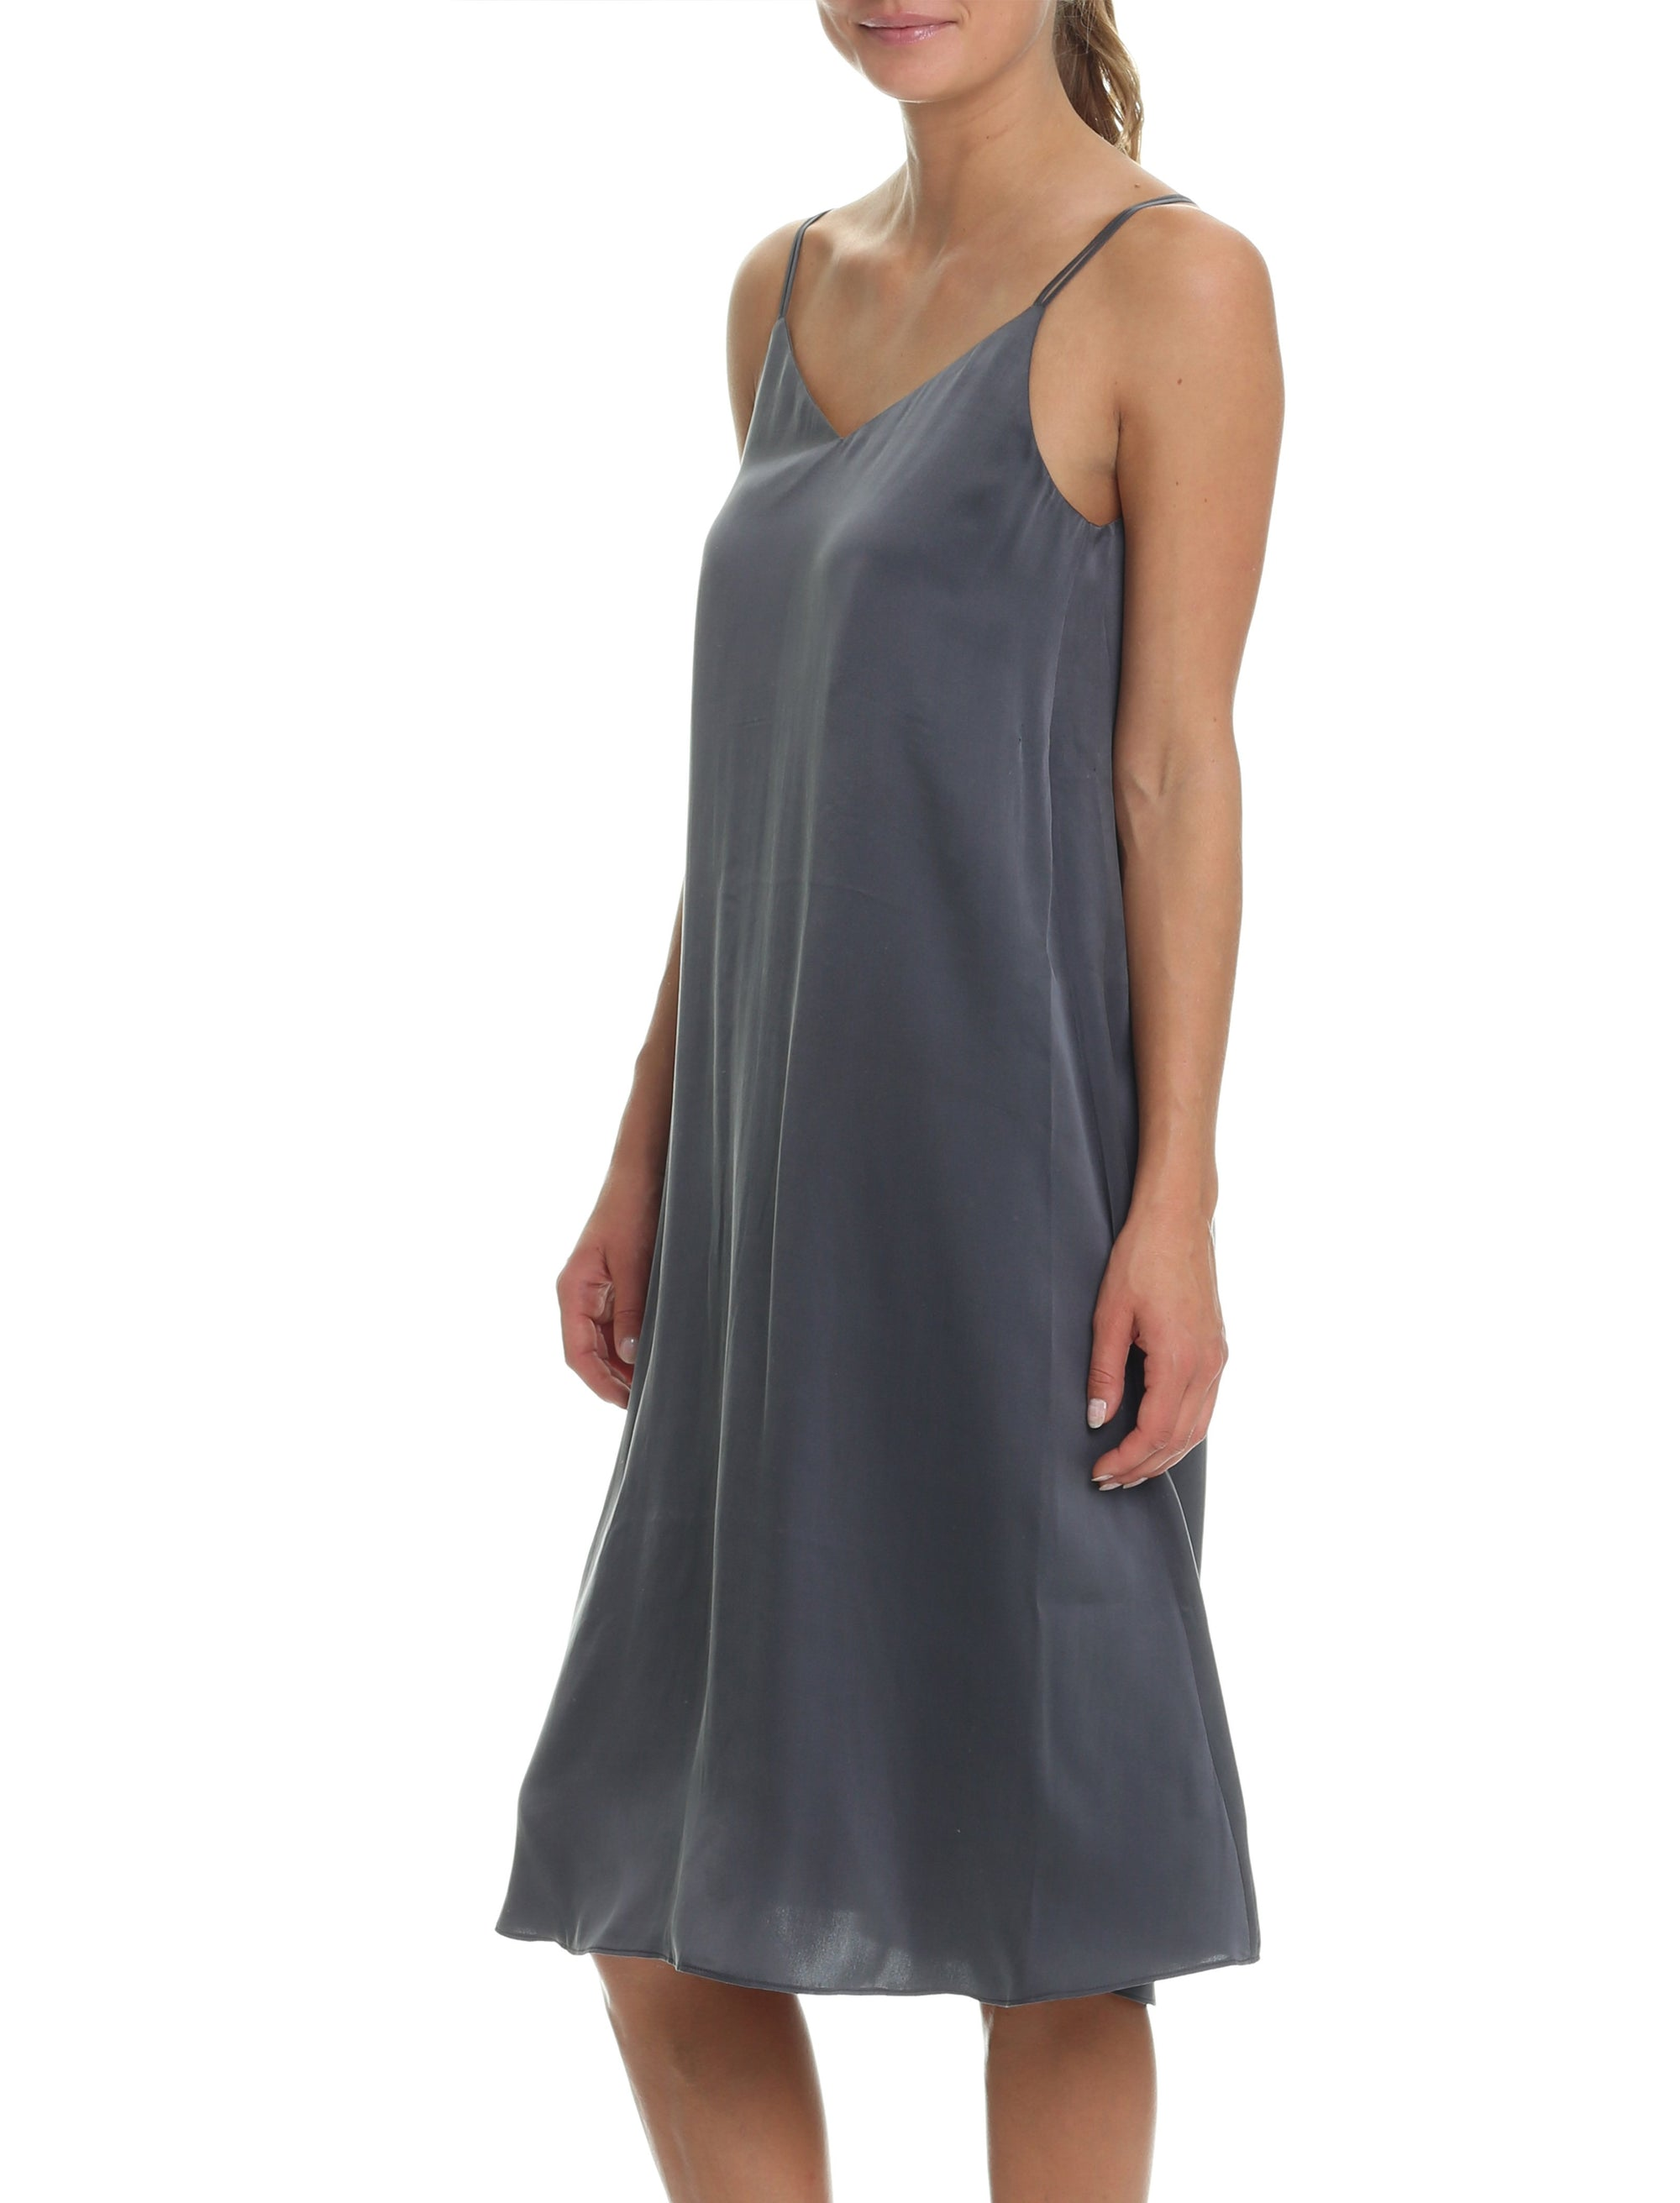 Washable Silk Slip Nightgown in Slate